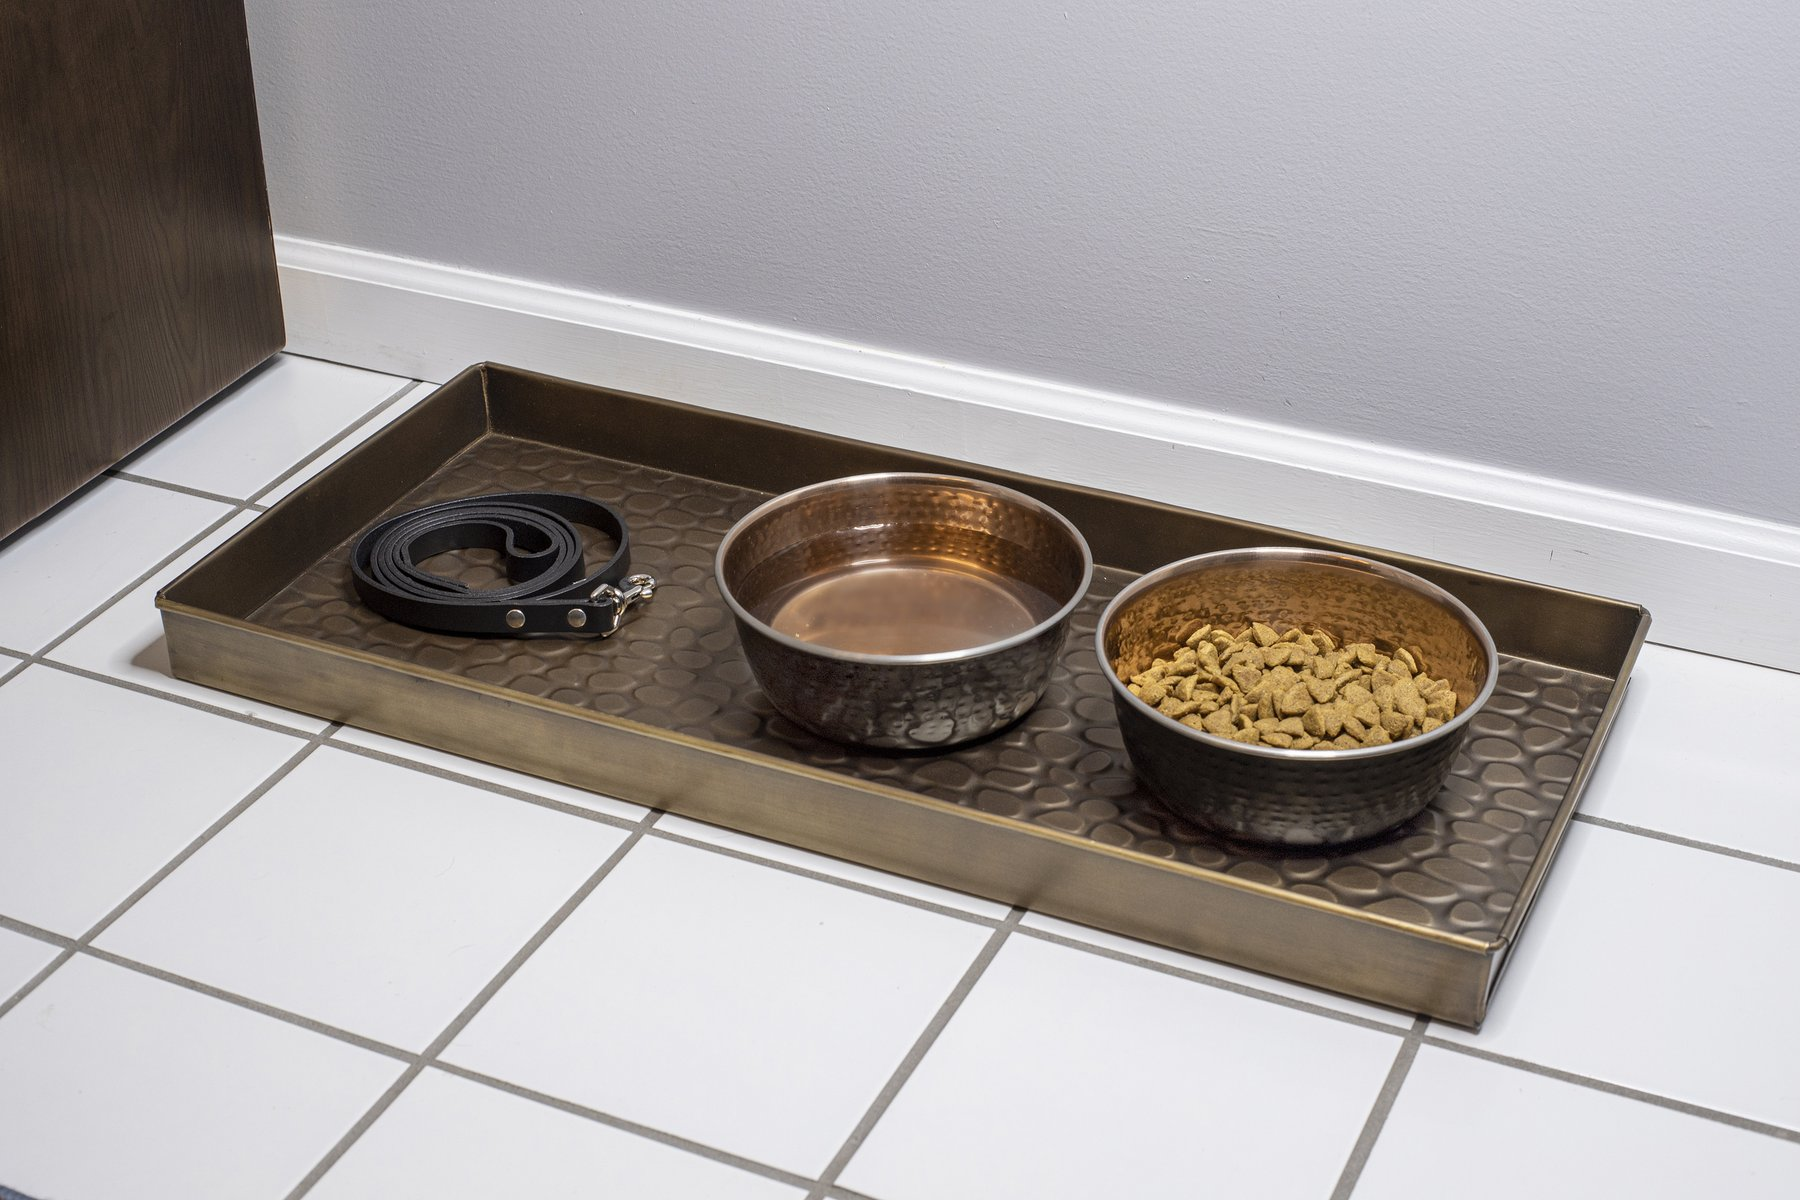 208br-pebbles-boot-tray-copperfinish-glam3-1800x1800.jpg